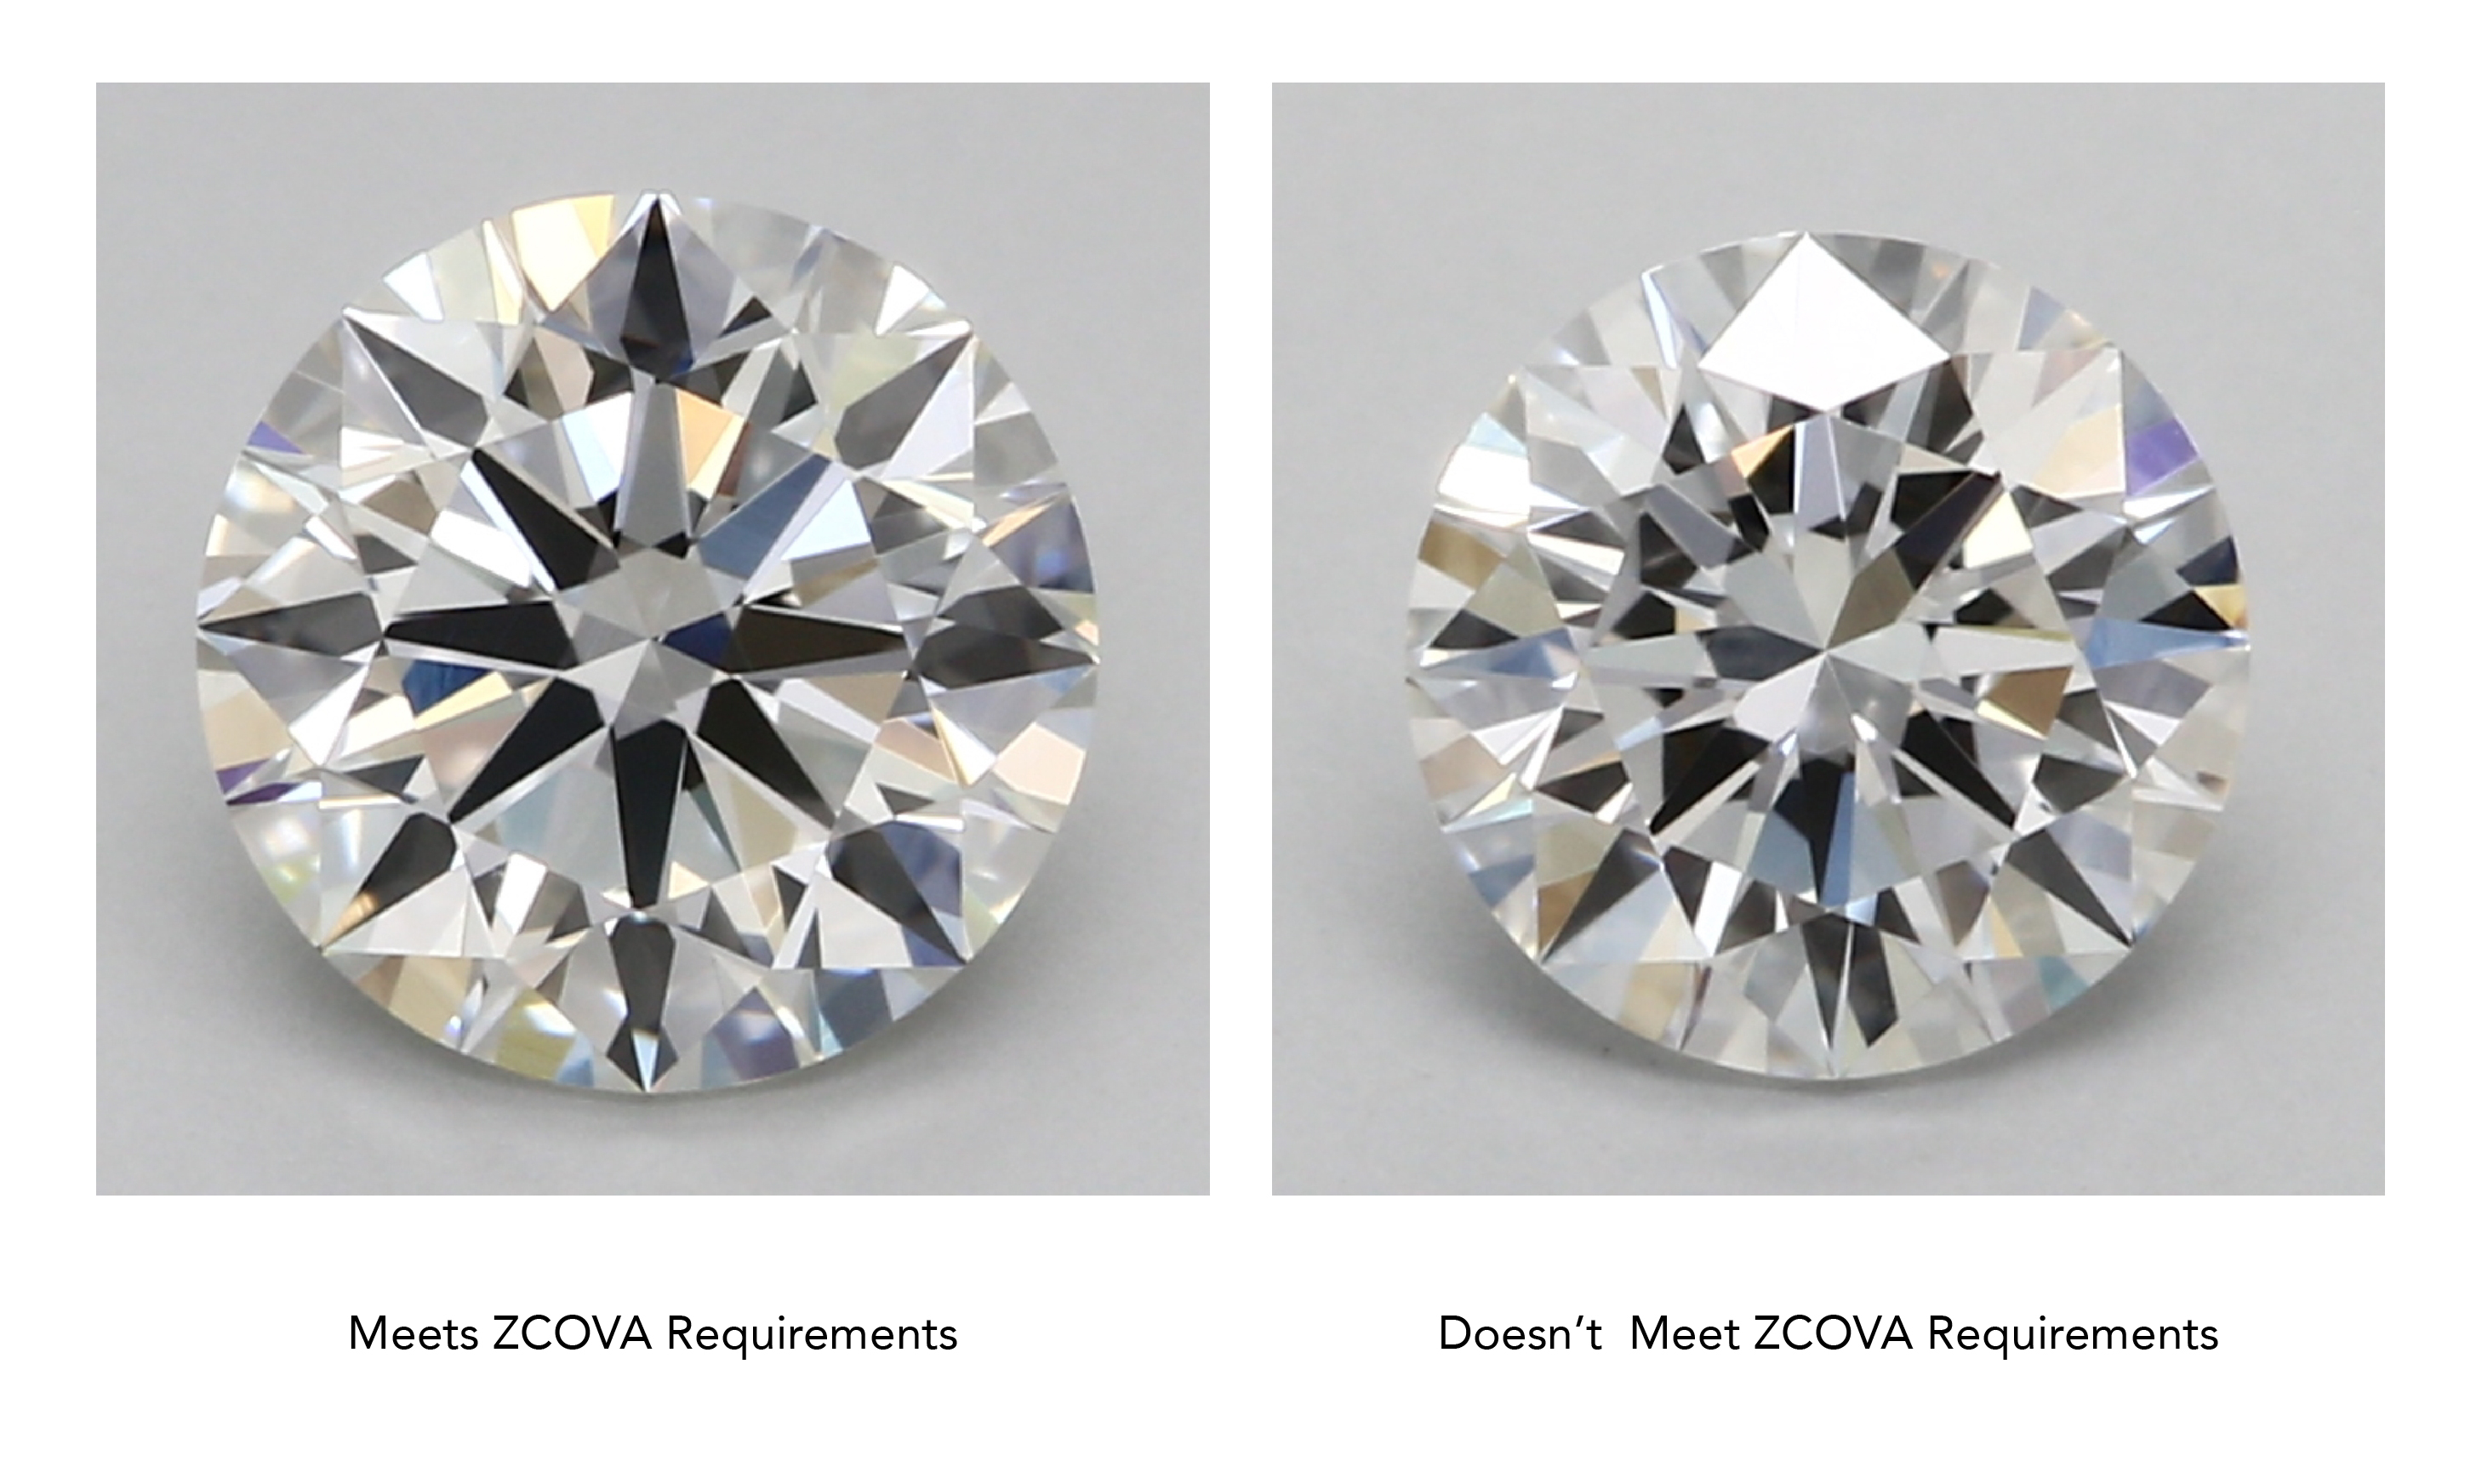 Comparison of diamonds that meet and do not meet ZCOVA requirements